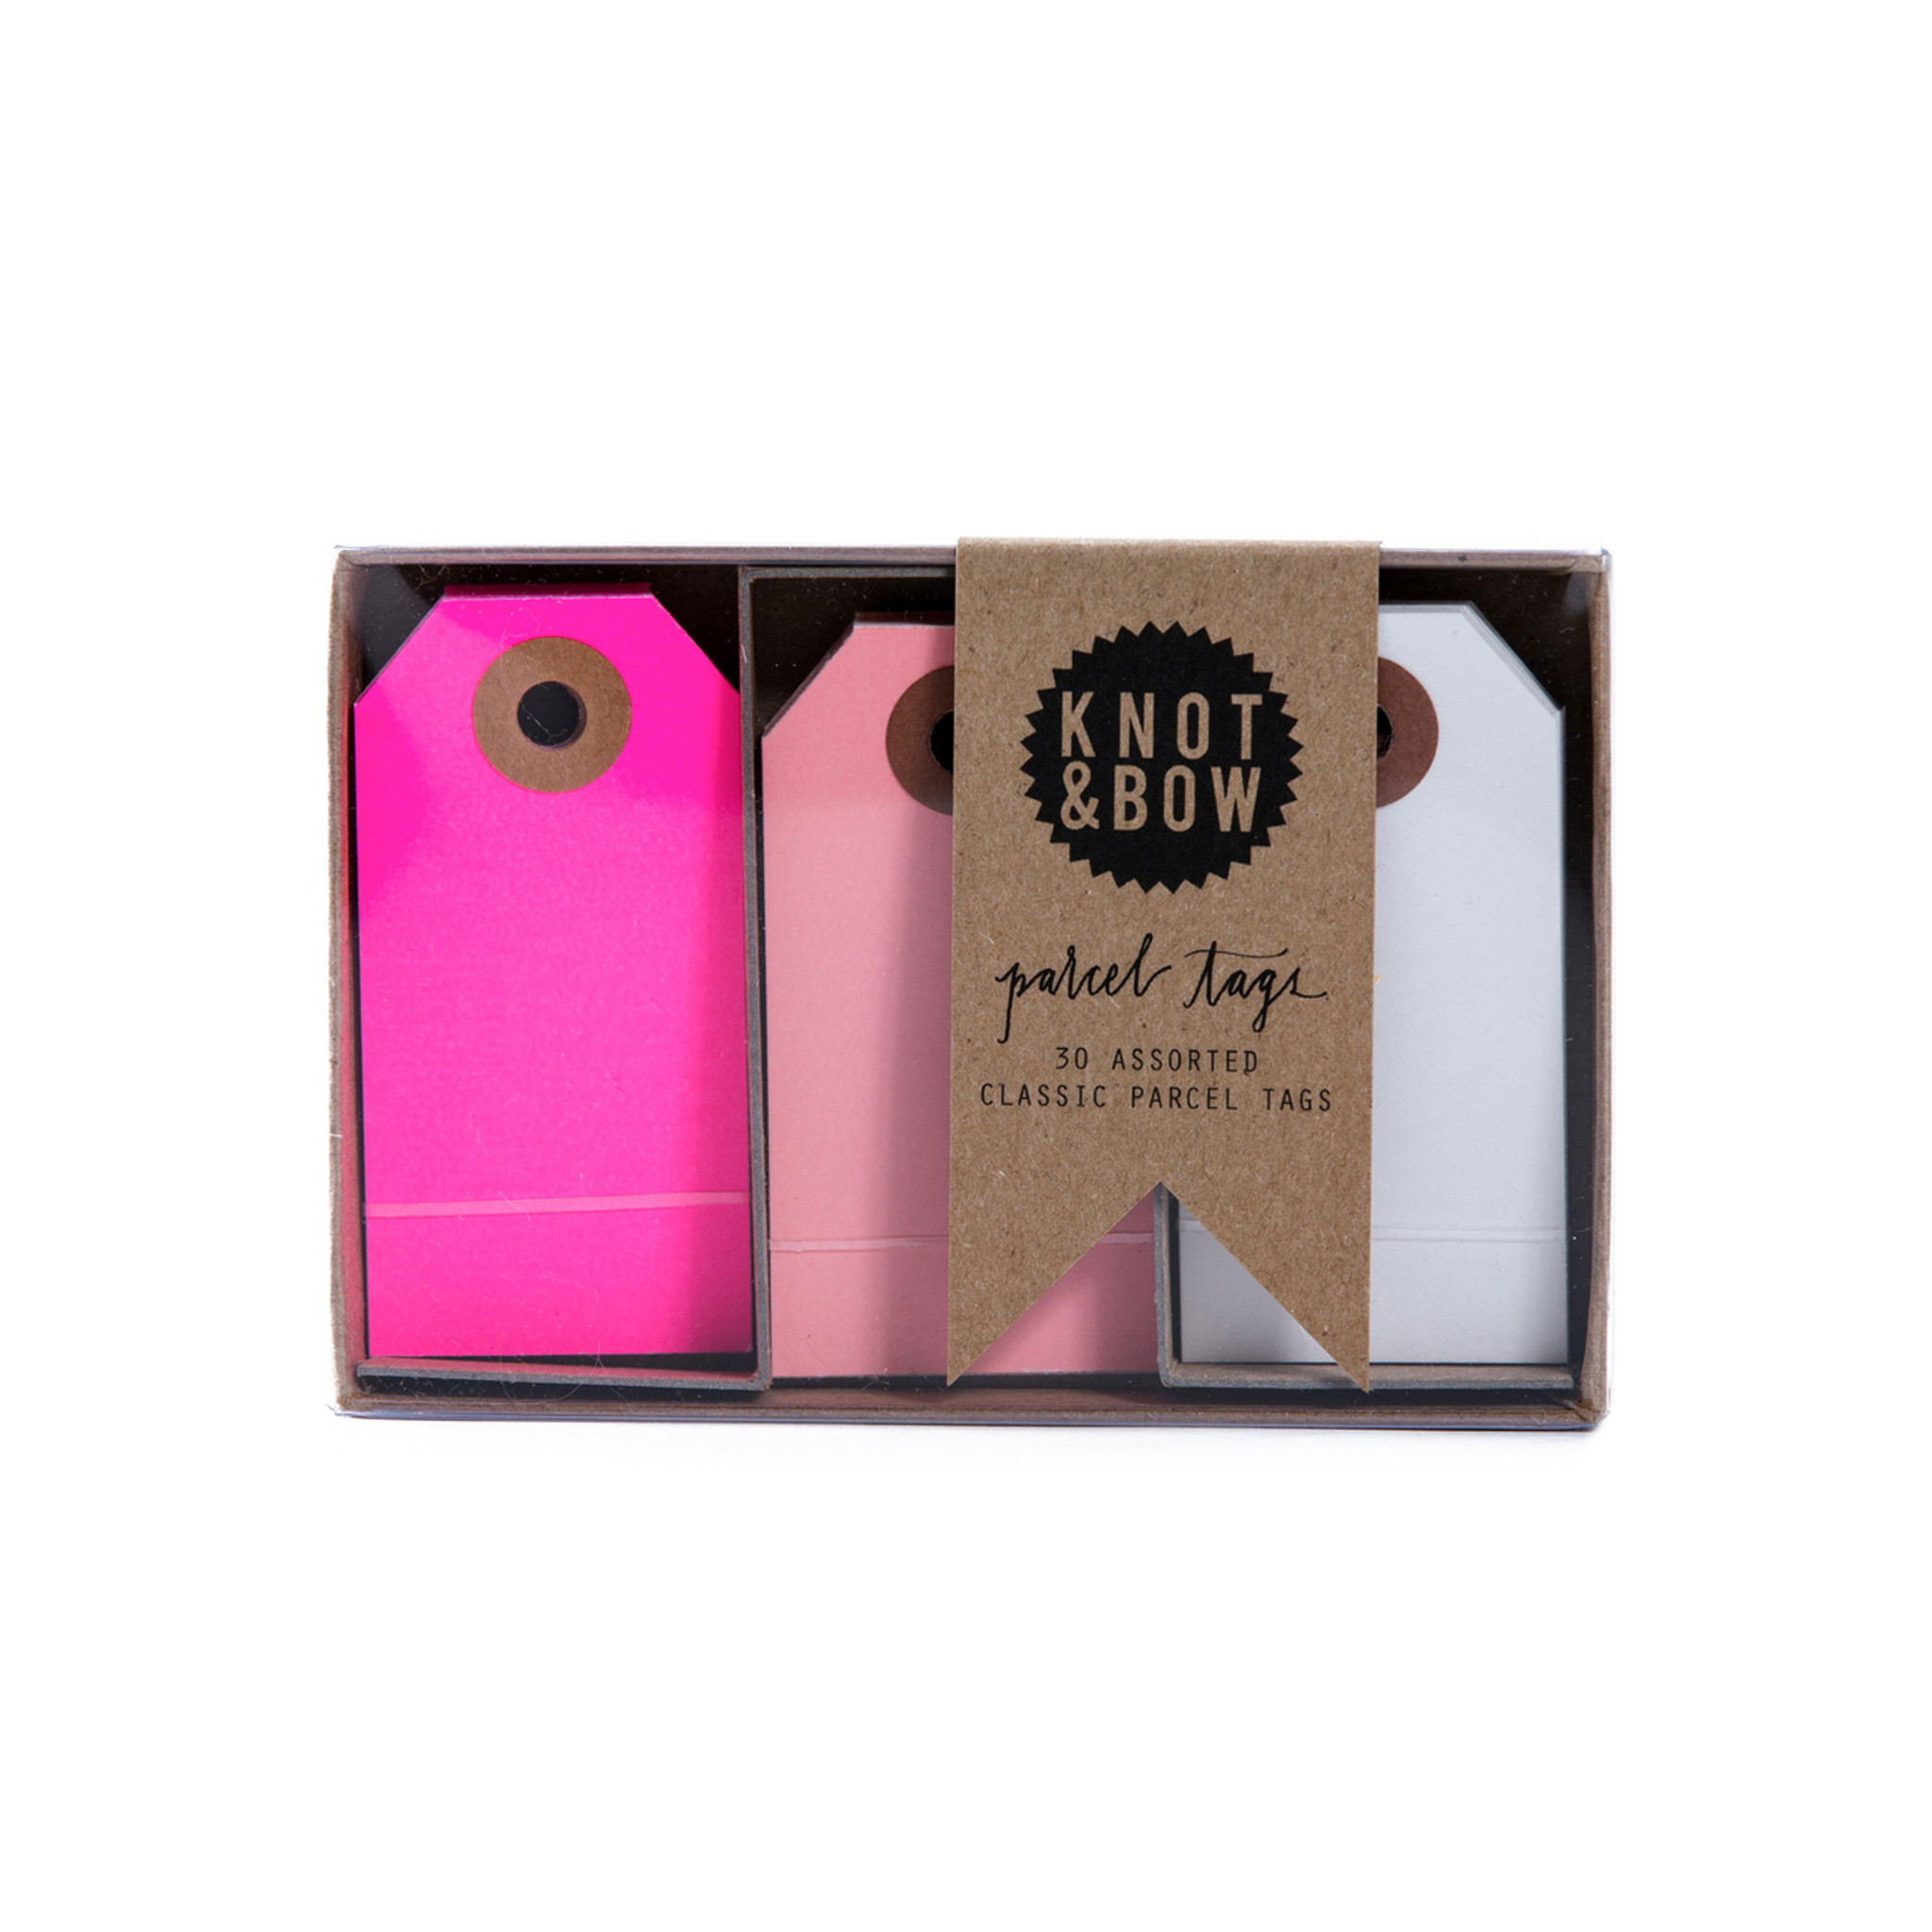 Parcel Tag Trio Box, Pink Mix